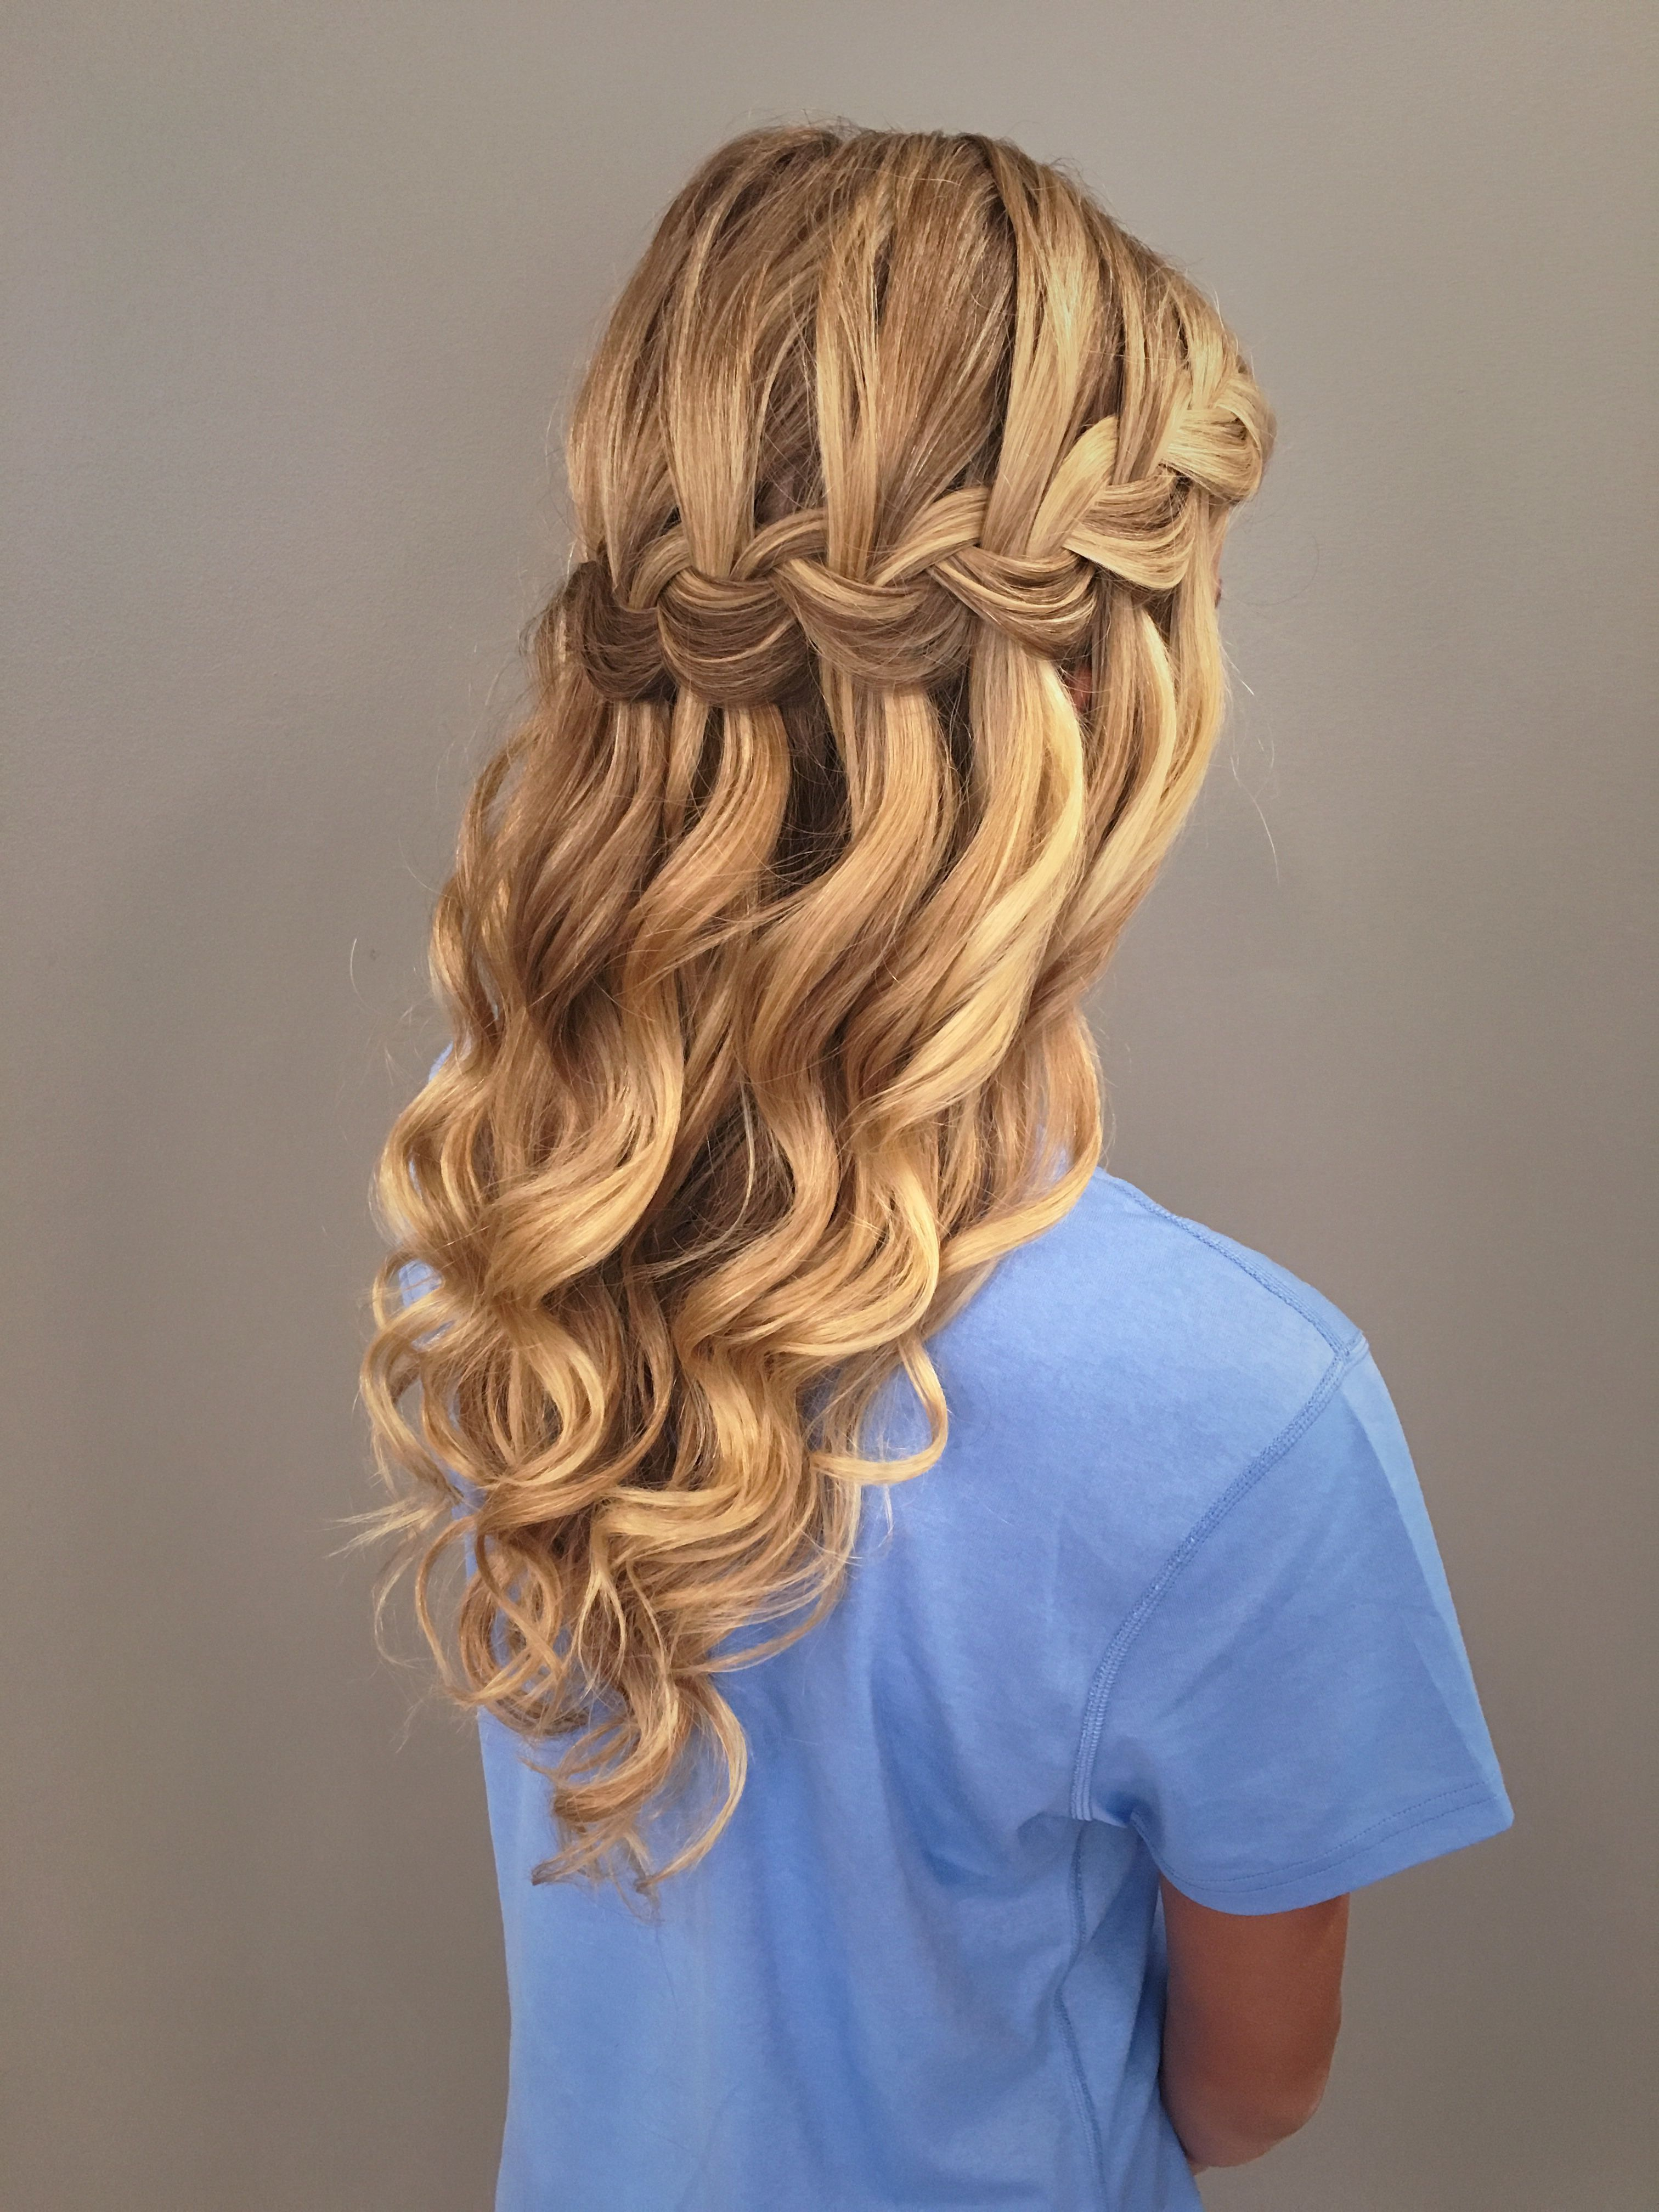 8th Grade Formal Hairstyles For Short Hair Formal Grade Hairstyles Hairstylesforshorthair Sho Cute Hairstyles For Short Hair Hair Styles Braided Prom Hair